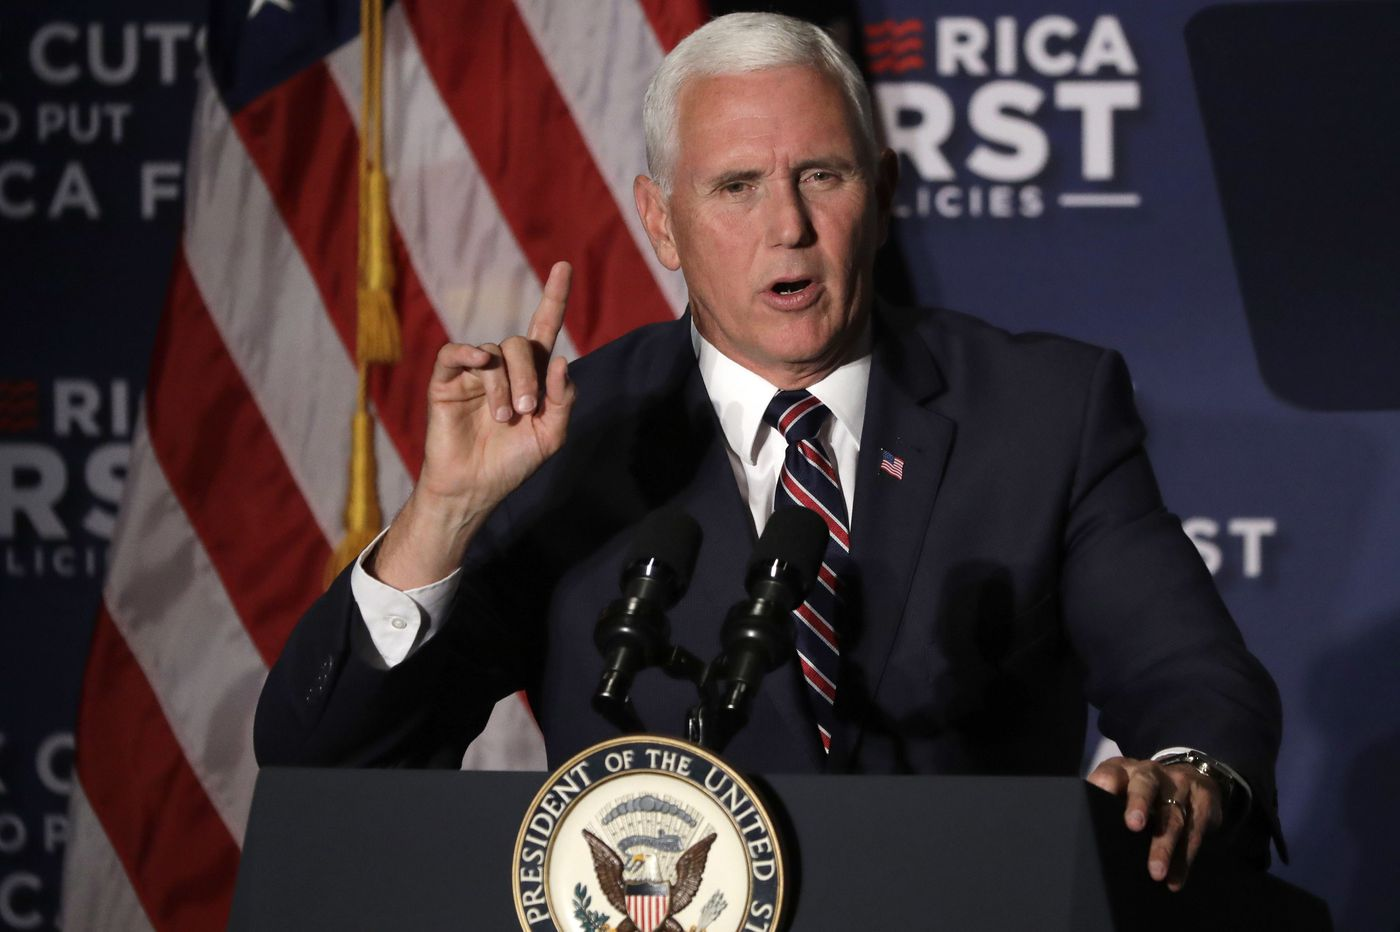 VP Mike Pence to visit Philly Monday to promote GOP's Lou Barletta, tax cuts